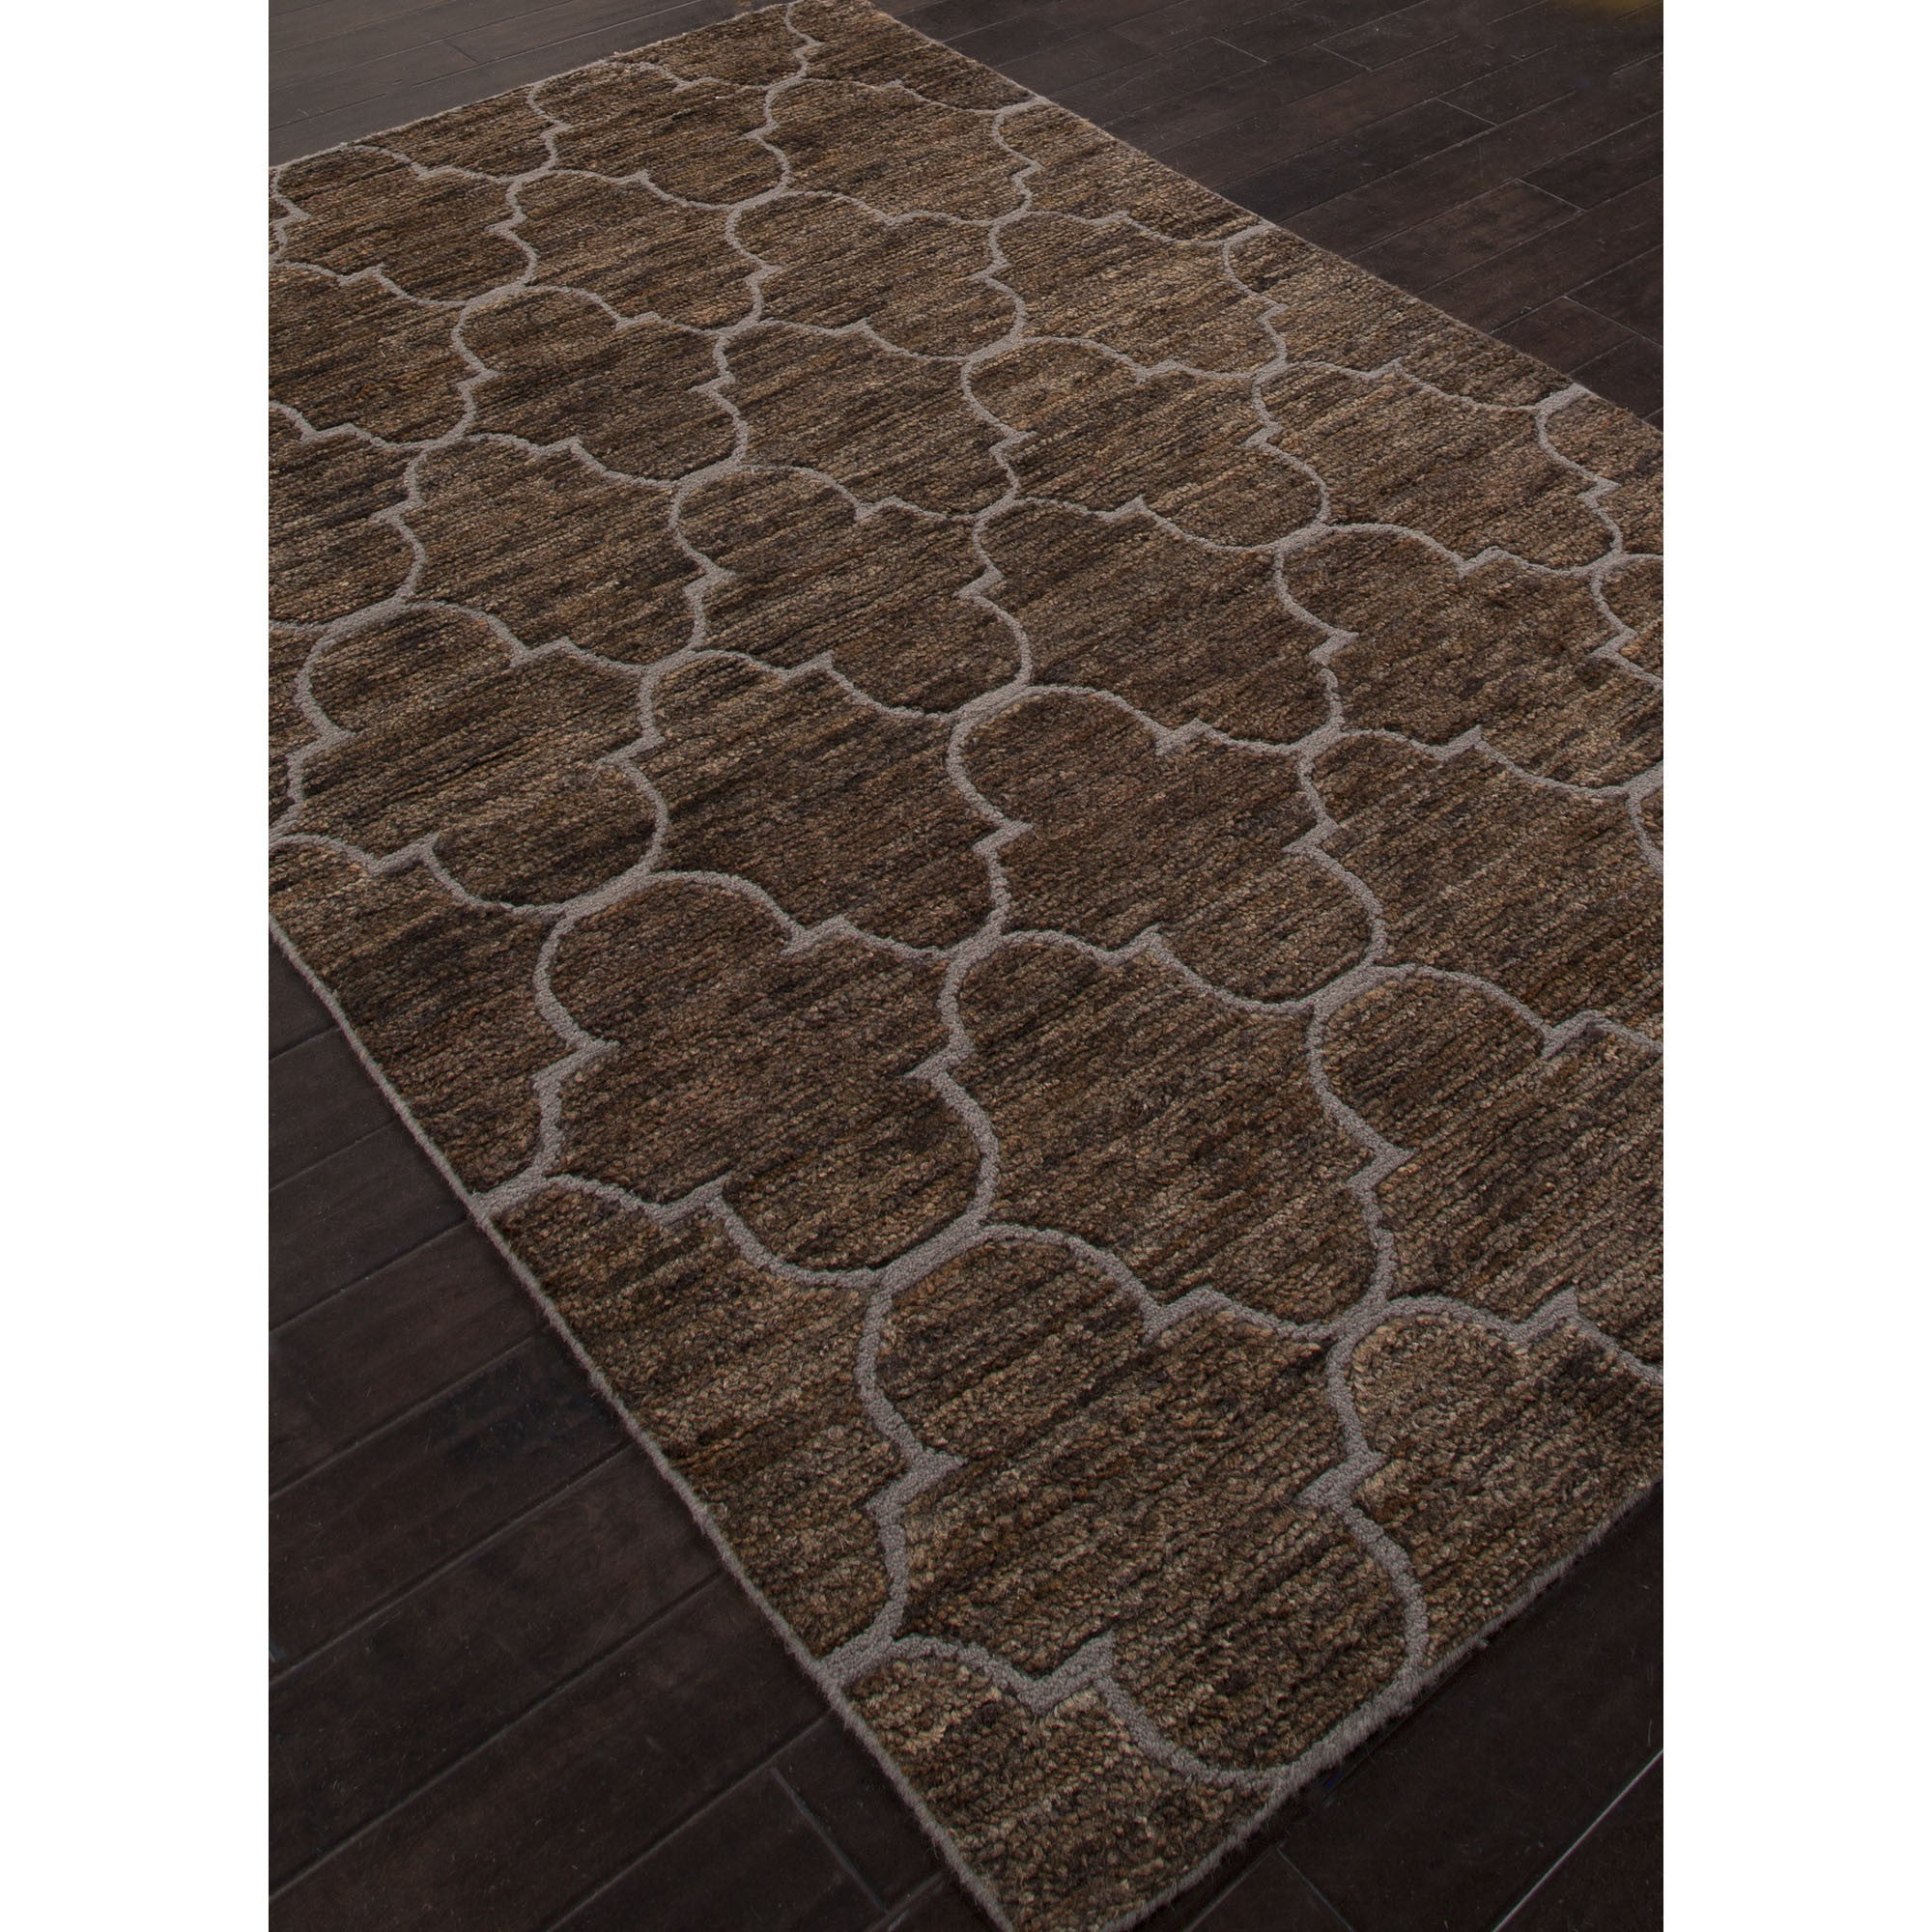 Jaipur Rugs Naturals Moroccan Pattern Brown Jute And Wool